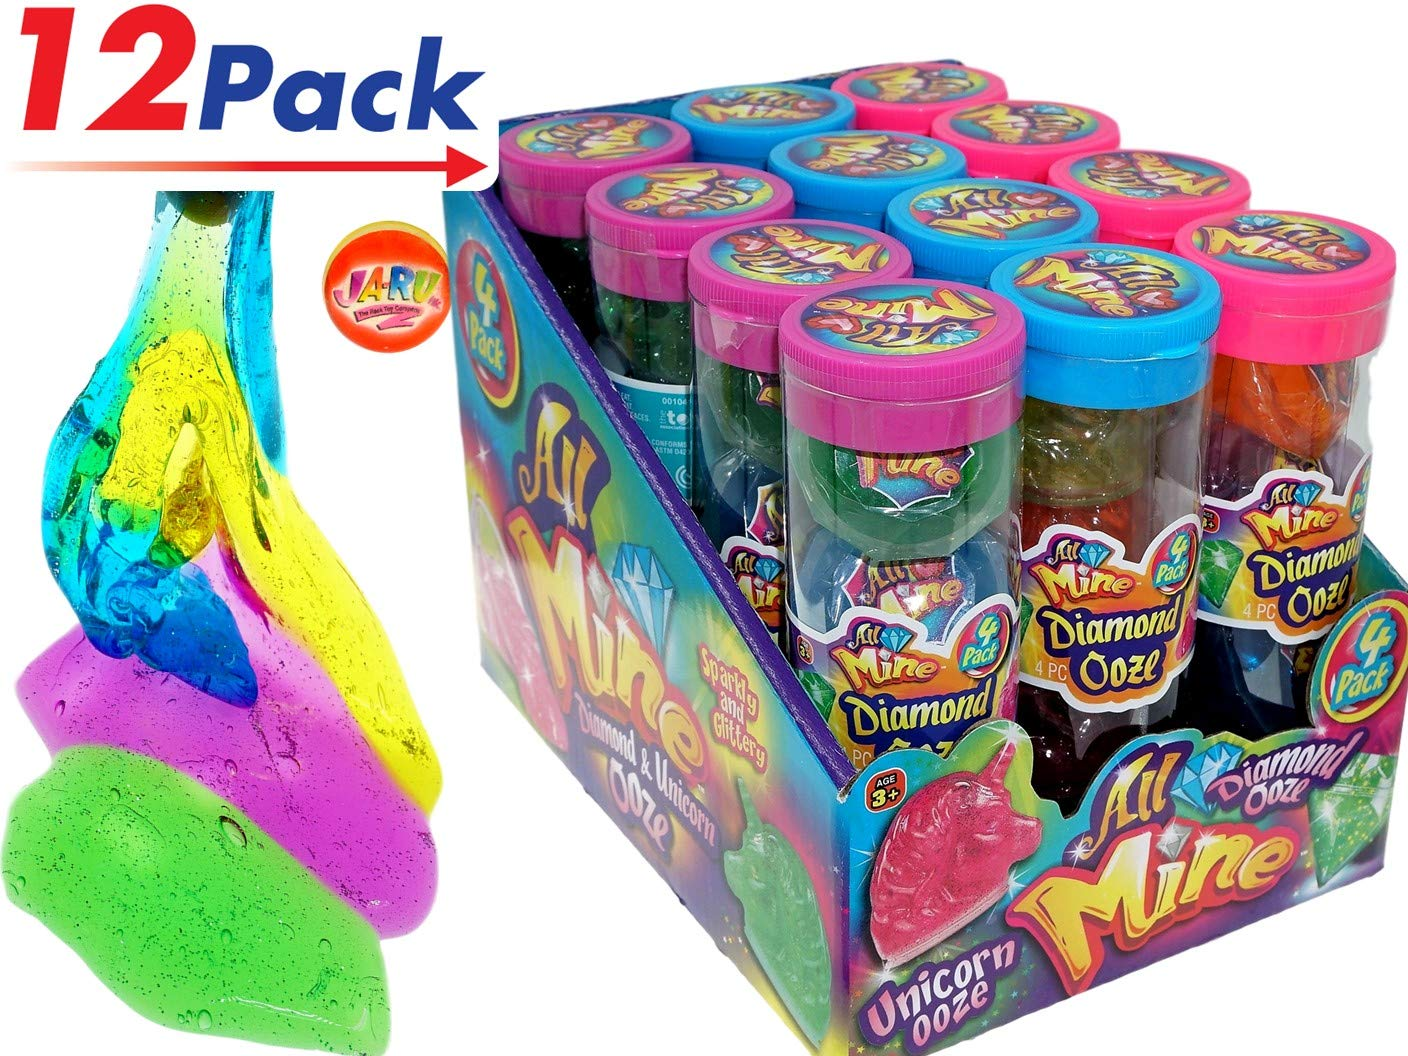 JA-RU Diamond & Unicorn Ooze Tube Packs Putty (12 Tubes with 48 Units) Plus 1 Collectable Bouncy Ball Multi Color Crystal | Item #4635-12p